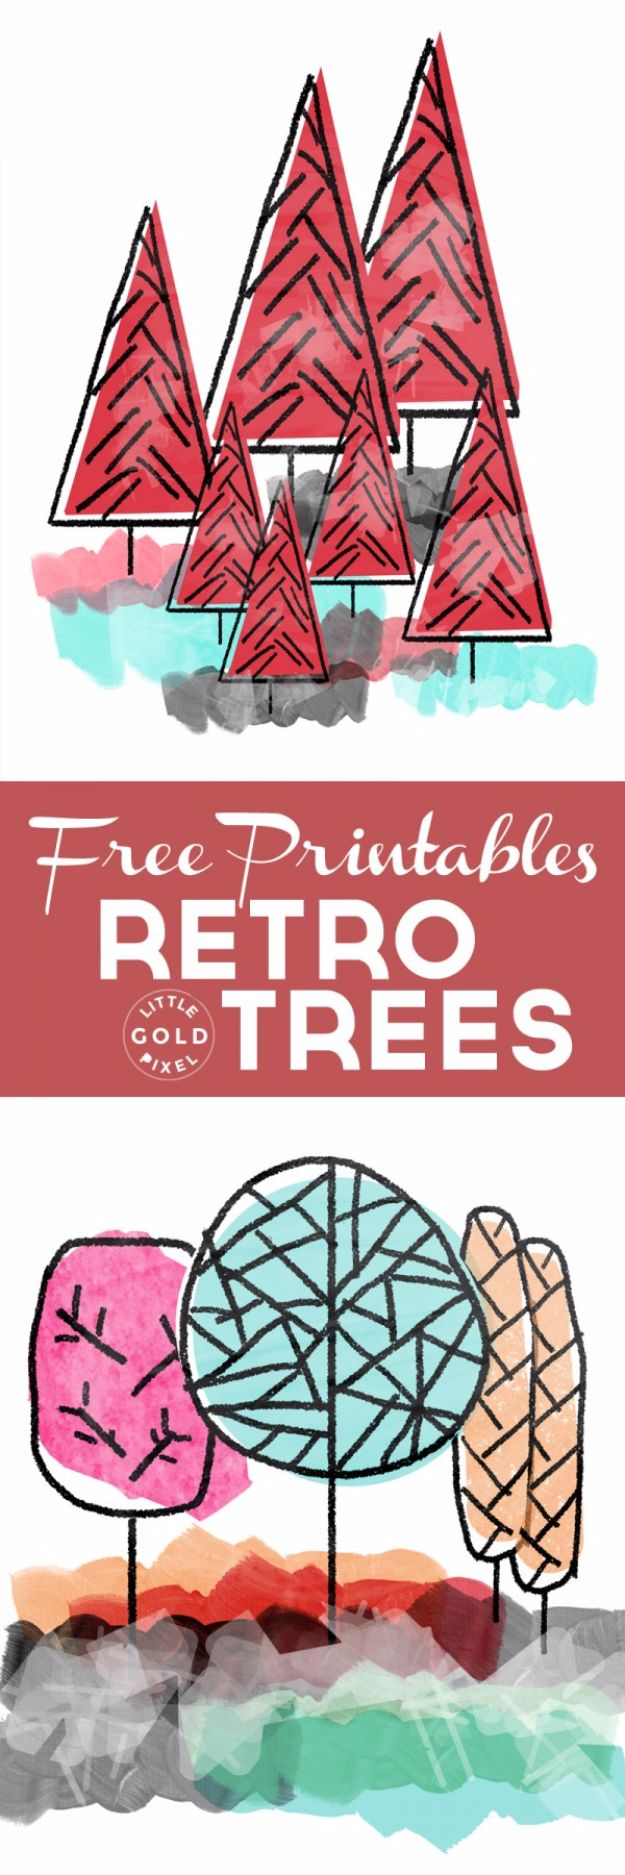 Best Free Printables For Your Walls - Awesome Retro Trees Free Printables - Free Prints for Wall Art and Picture to Print for Home and Bedroom Decor - Crafts to Make and Sell With Ideas for the Home, Organization #diy